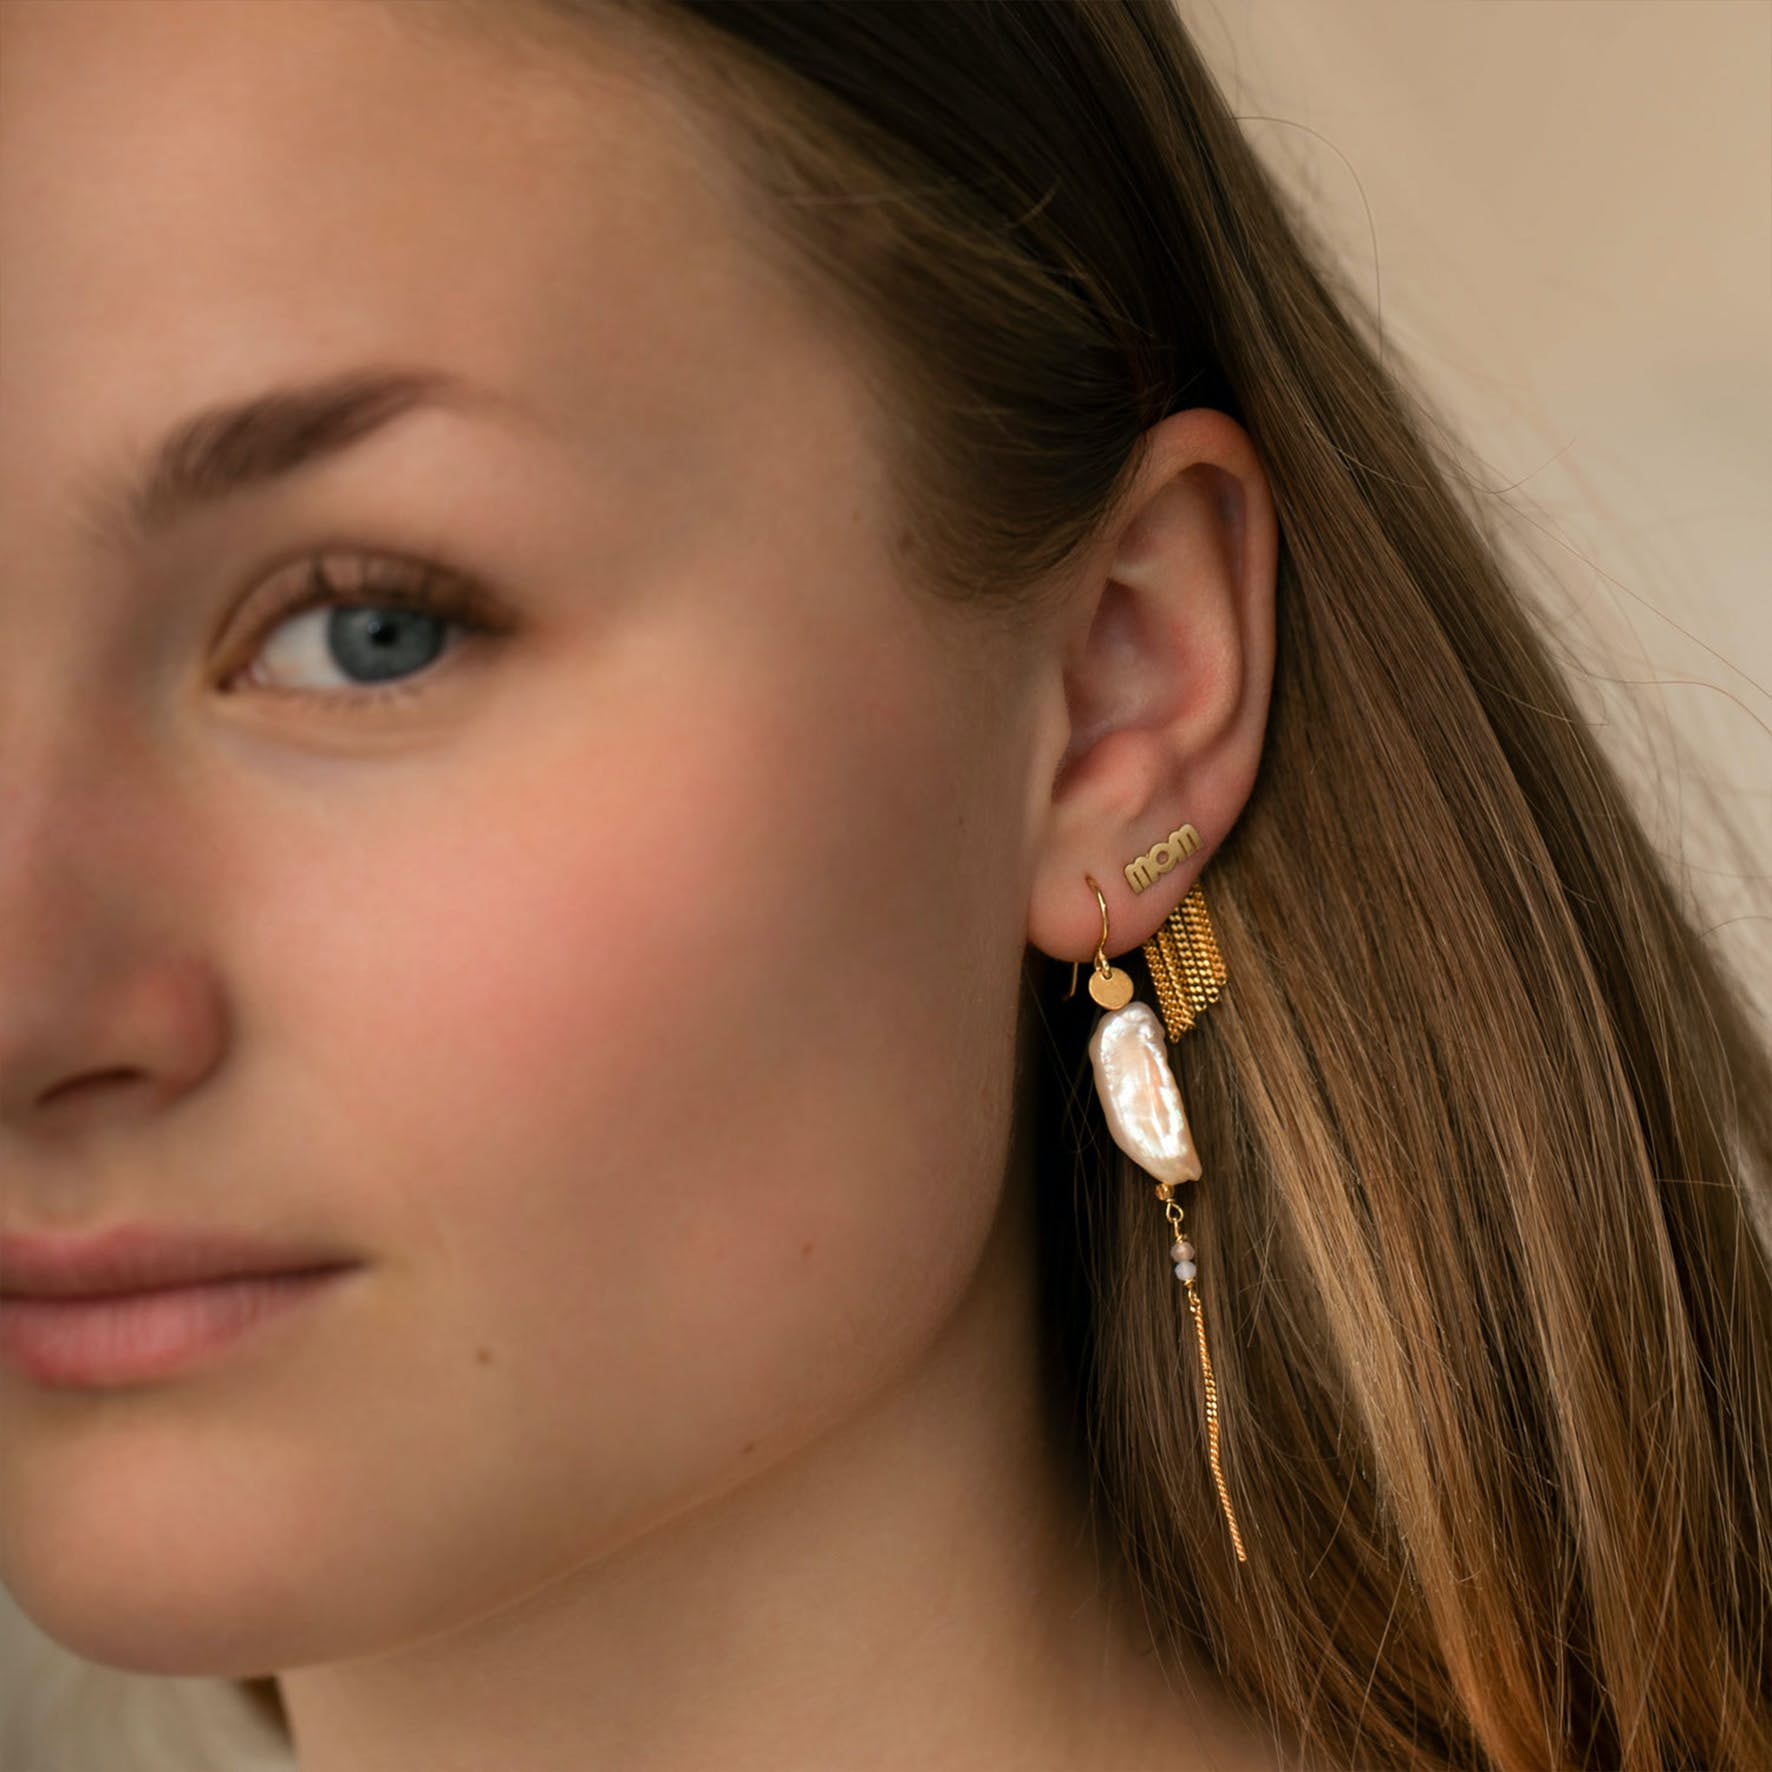 Long Baroque Pearl with Chain Earring Peach Sorbet fra STINE A Jewelry i Forgylt-Sølv Sterling 925|Freshwater Pearl